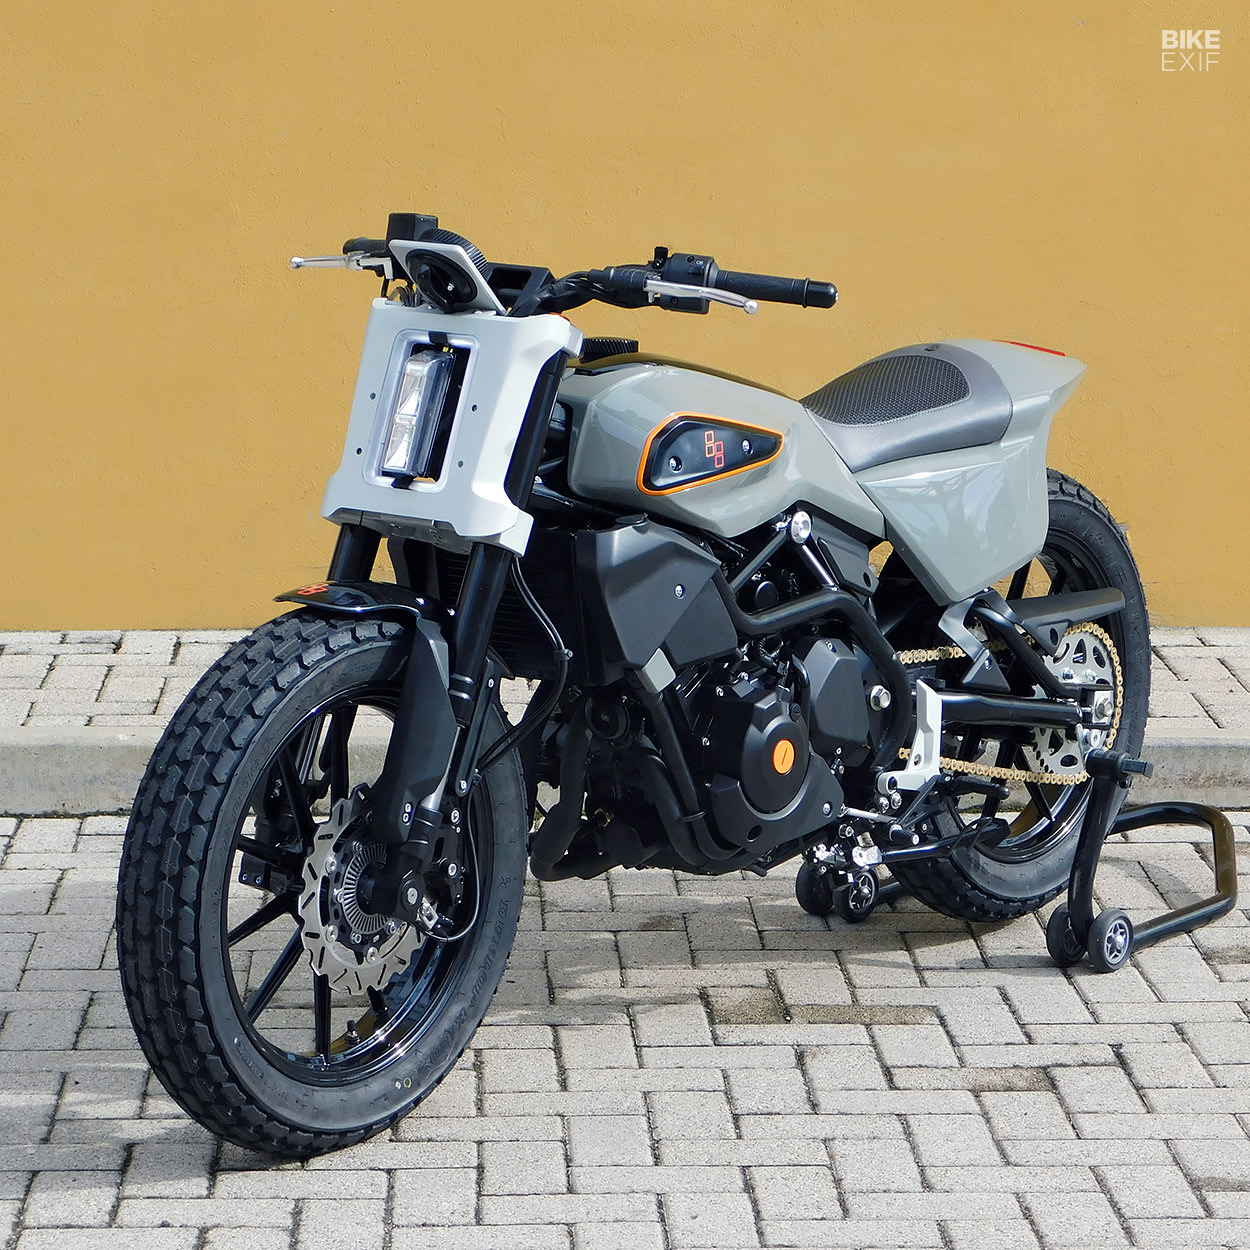 XR338 street tracker concept by Engines Engineering